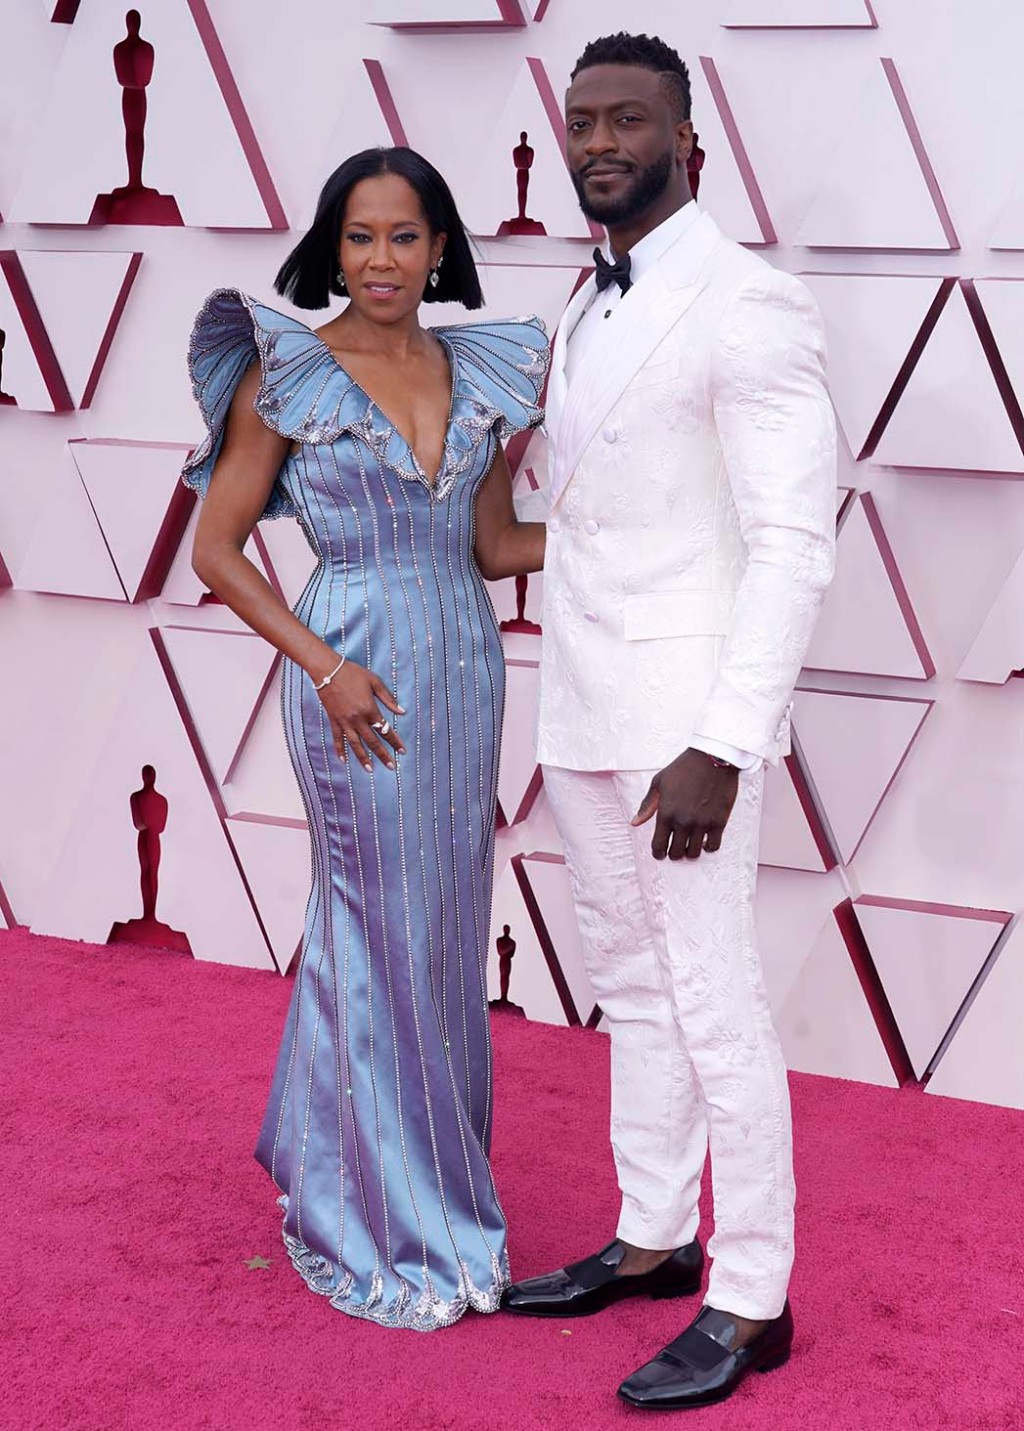 Regina King, left, and Aldis Hodge